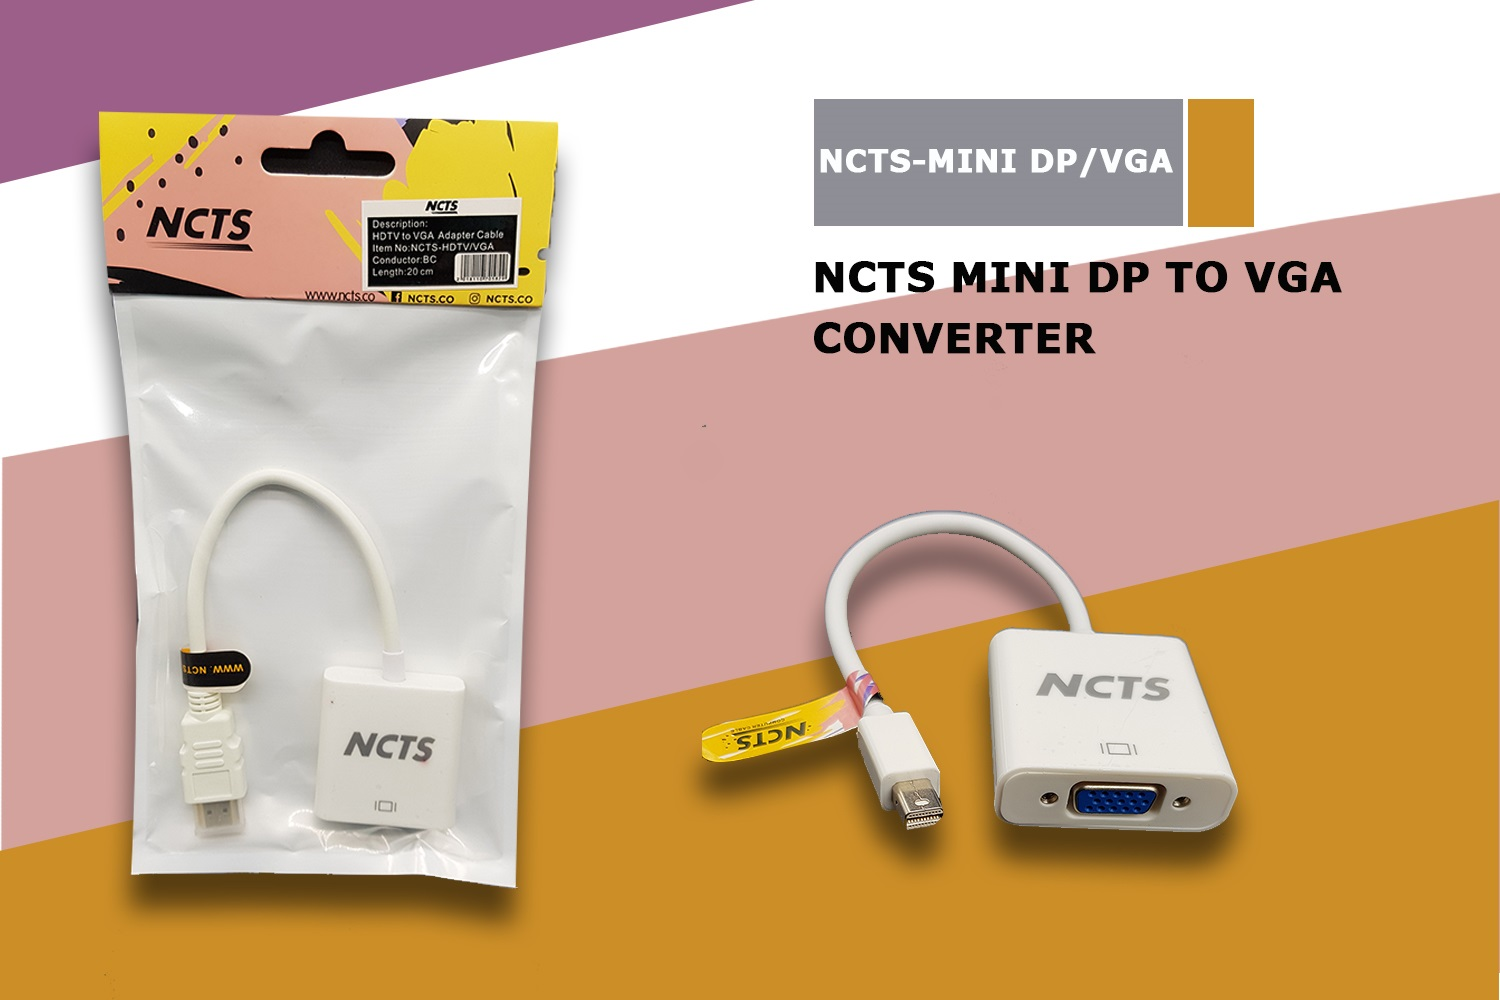 NCTS MINI DP TO VGA